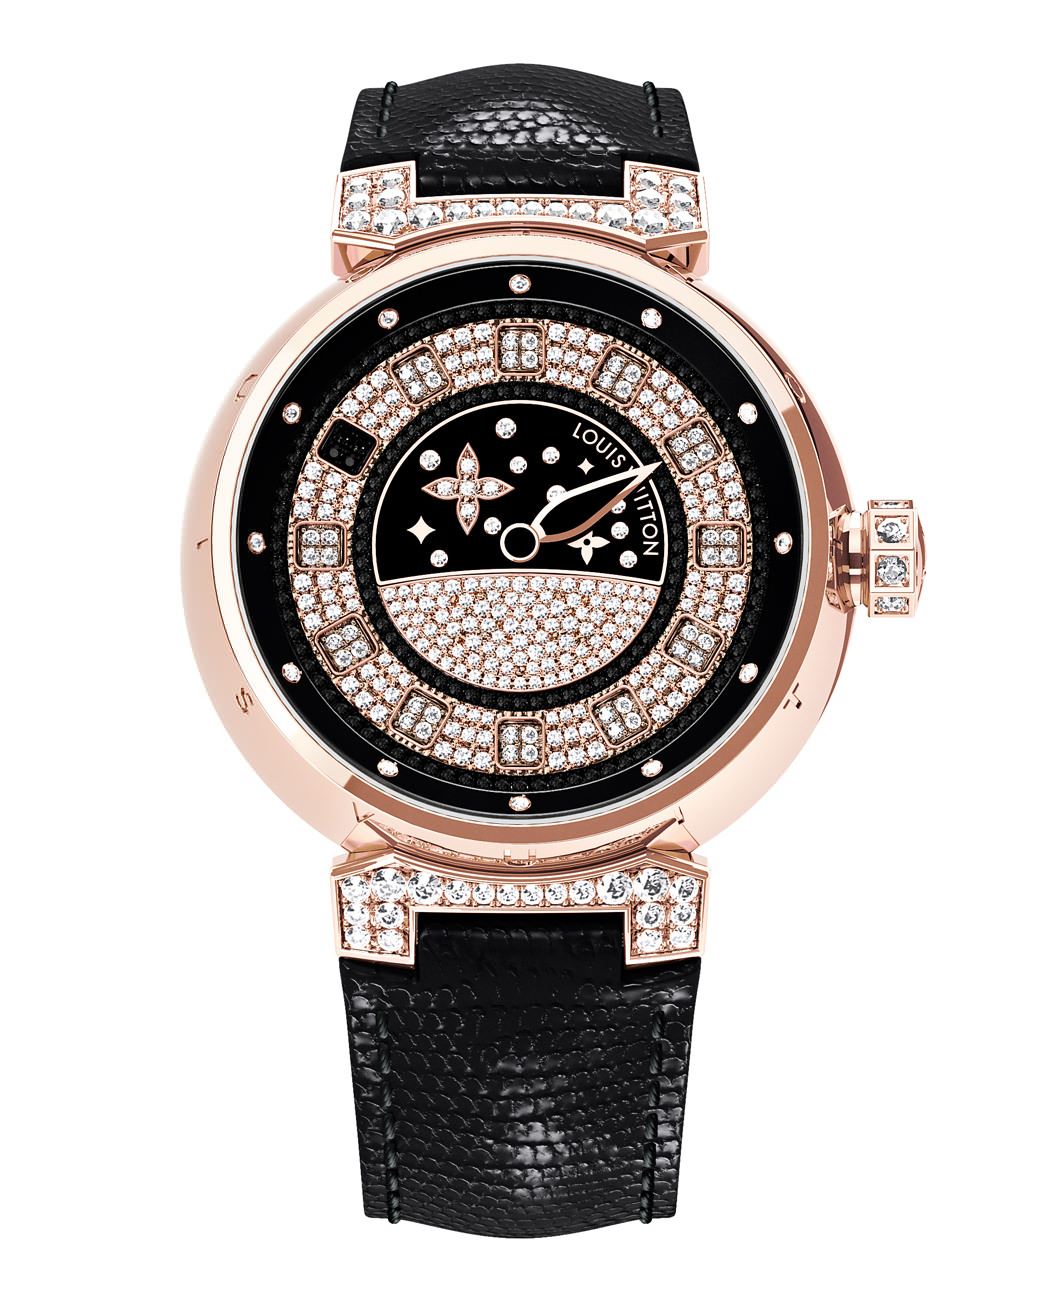 TAMBOUR SPIN TIME JOAILLERIE ROSE GOLD de Louis Vuitton